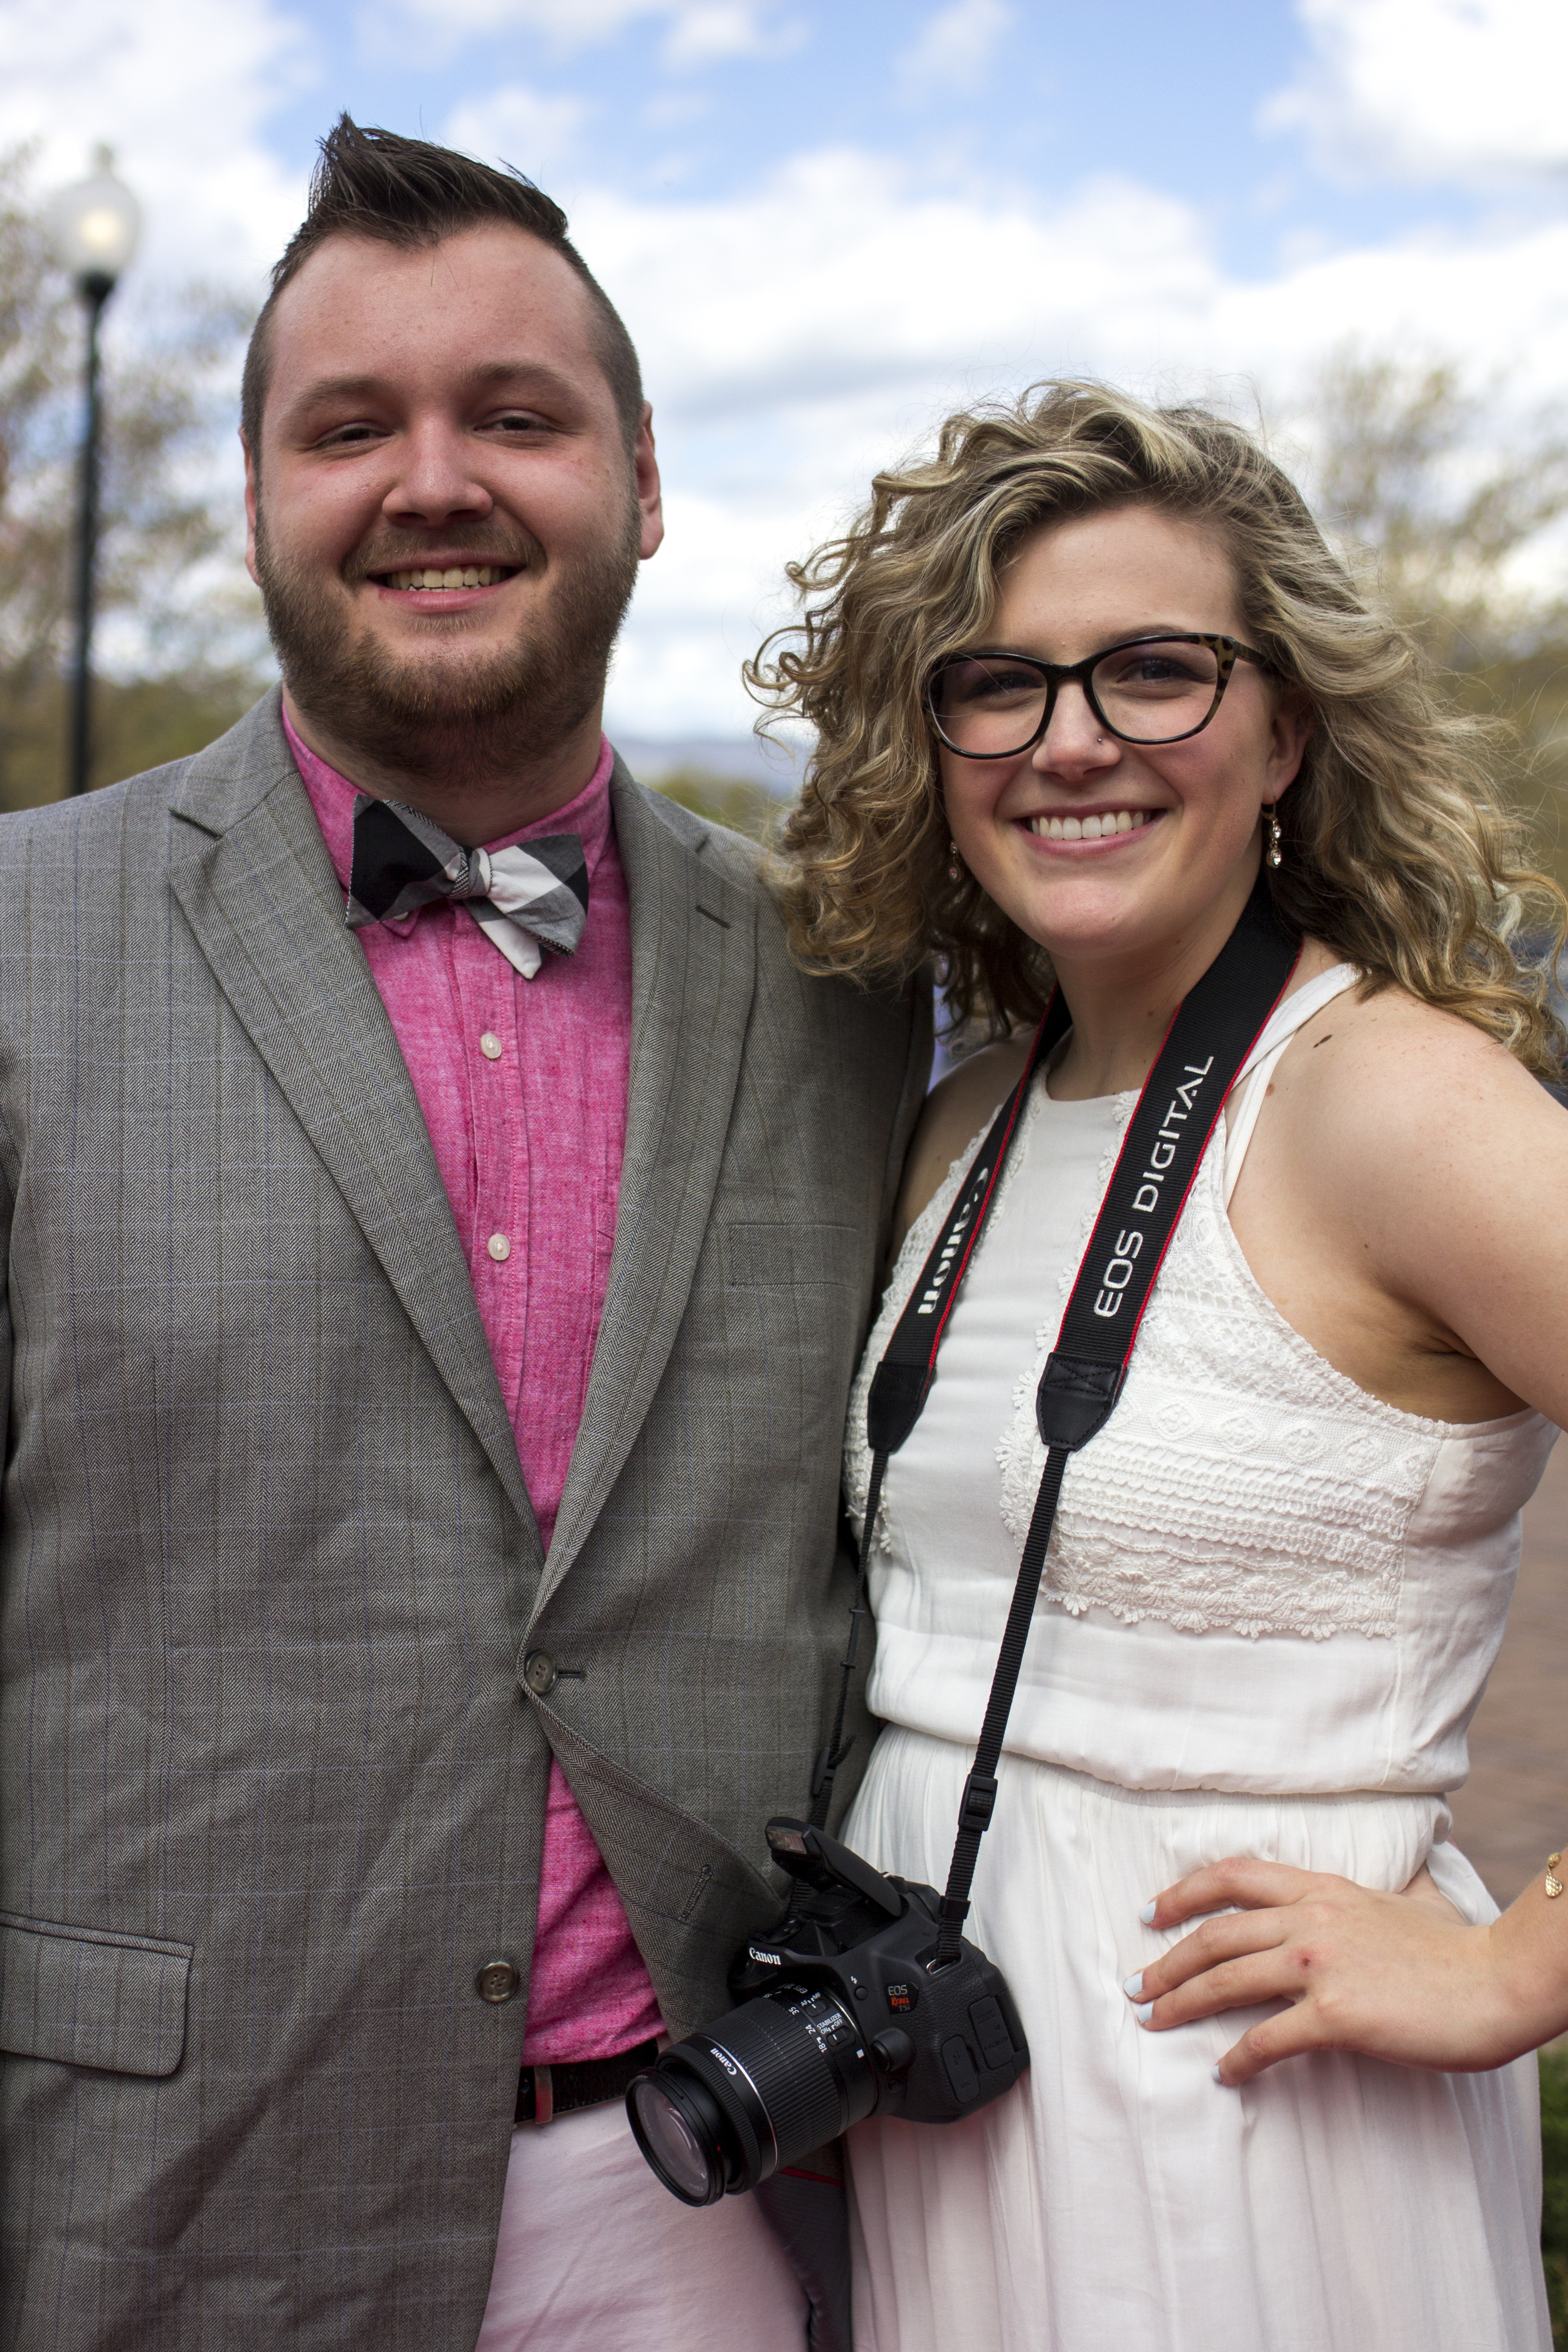 Carli Frady takes a break from taking pictures to have her own red carpet moment with Adam Polk.